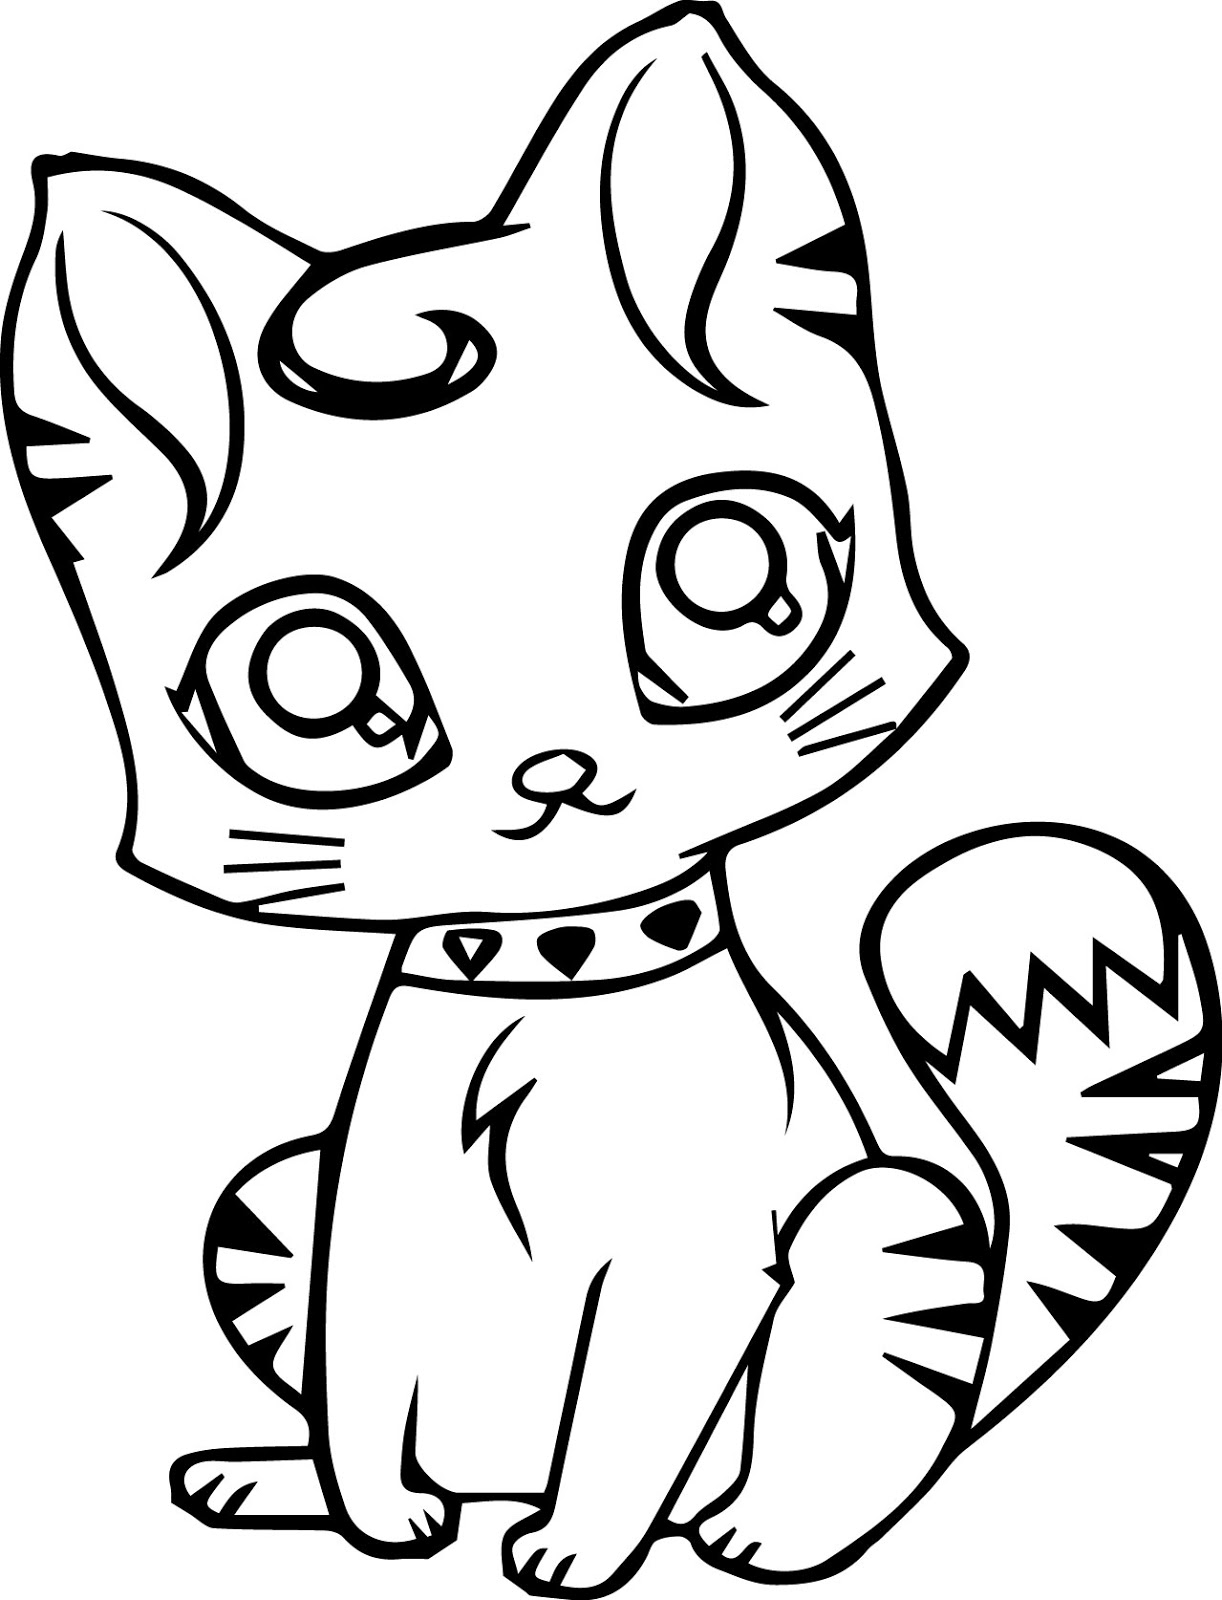 free coloring pages of kittens kittens coloring pages minister coloring free of kittens coloring pages